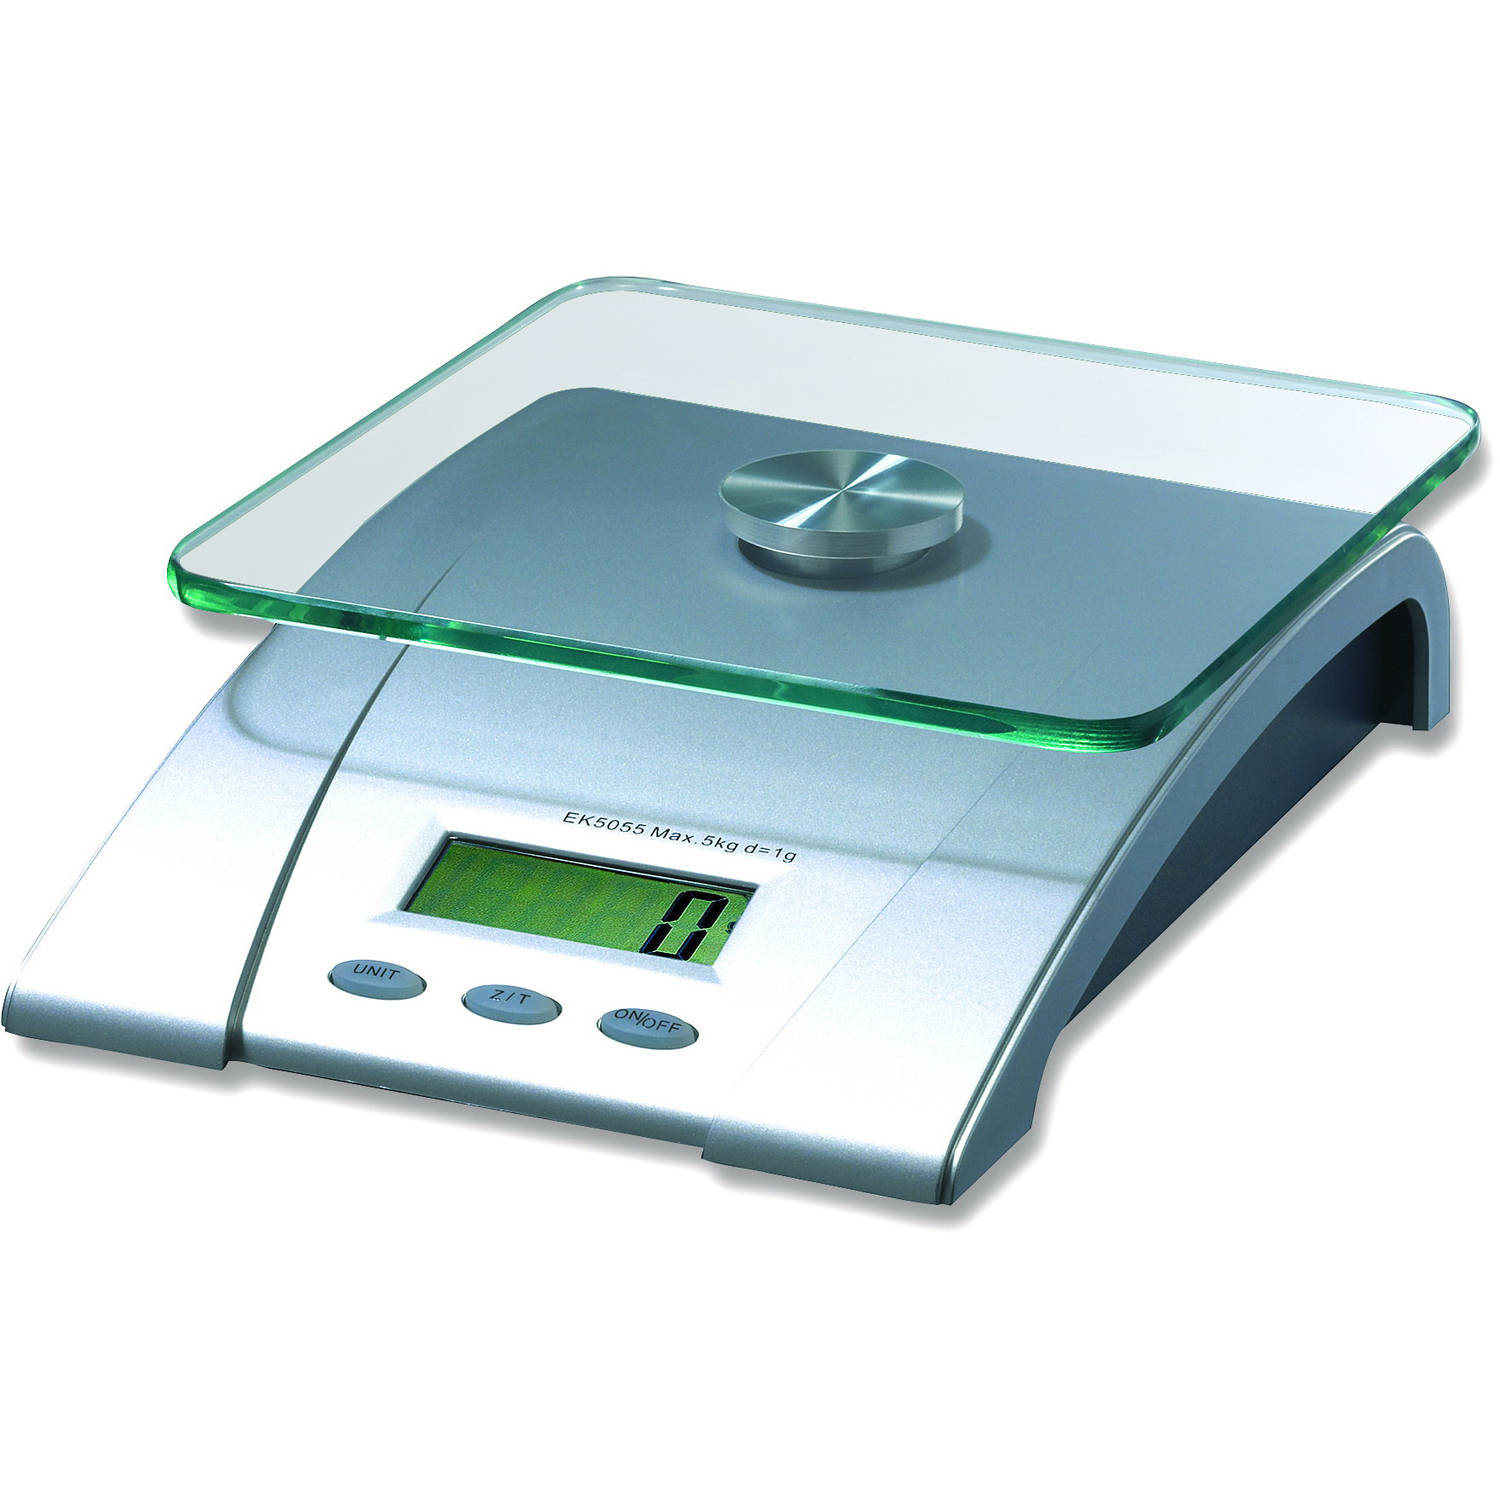 mainstays glass digital kitchen scale - walmart